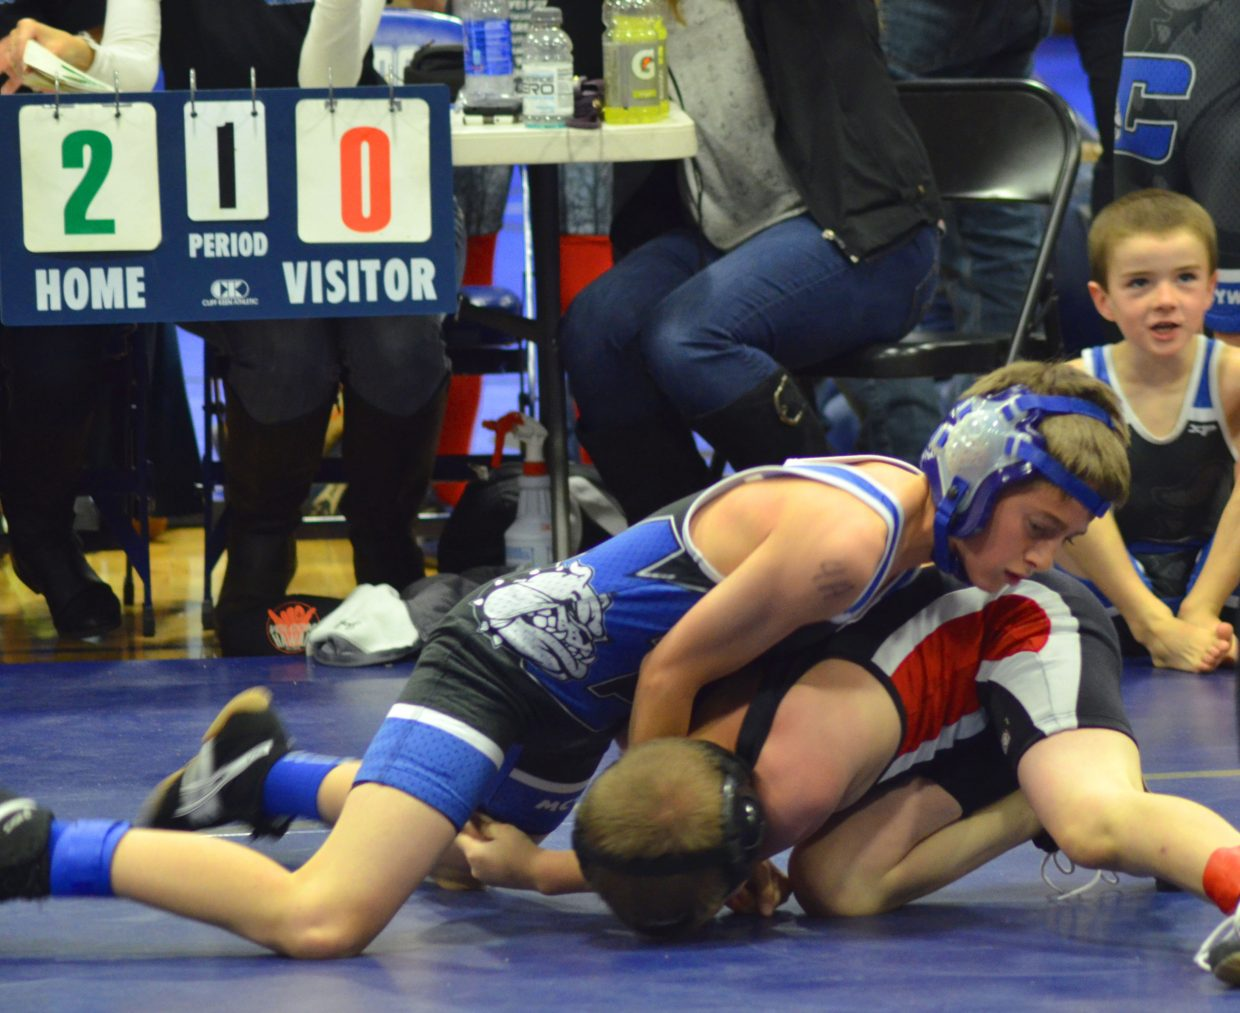 Youth wrestling grabs huge attention Saturday in Craig